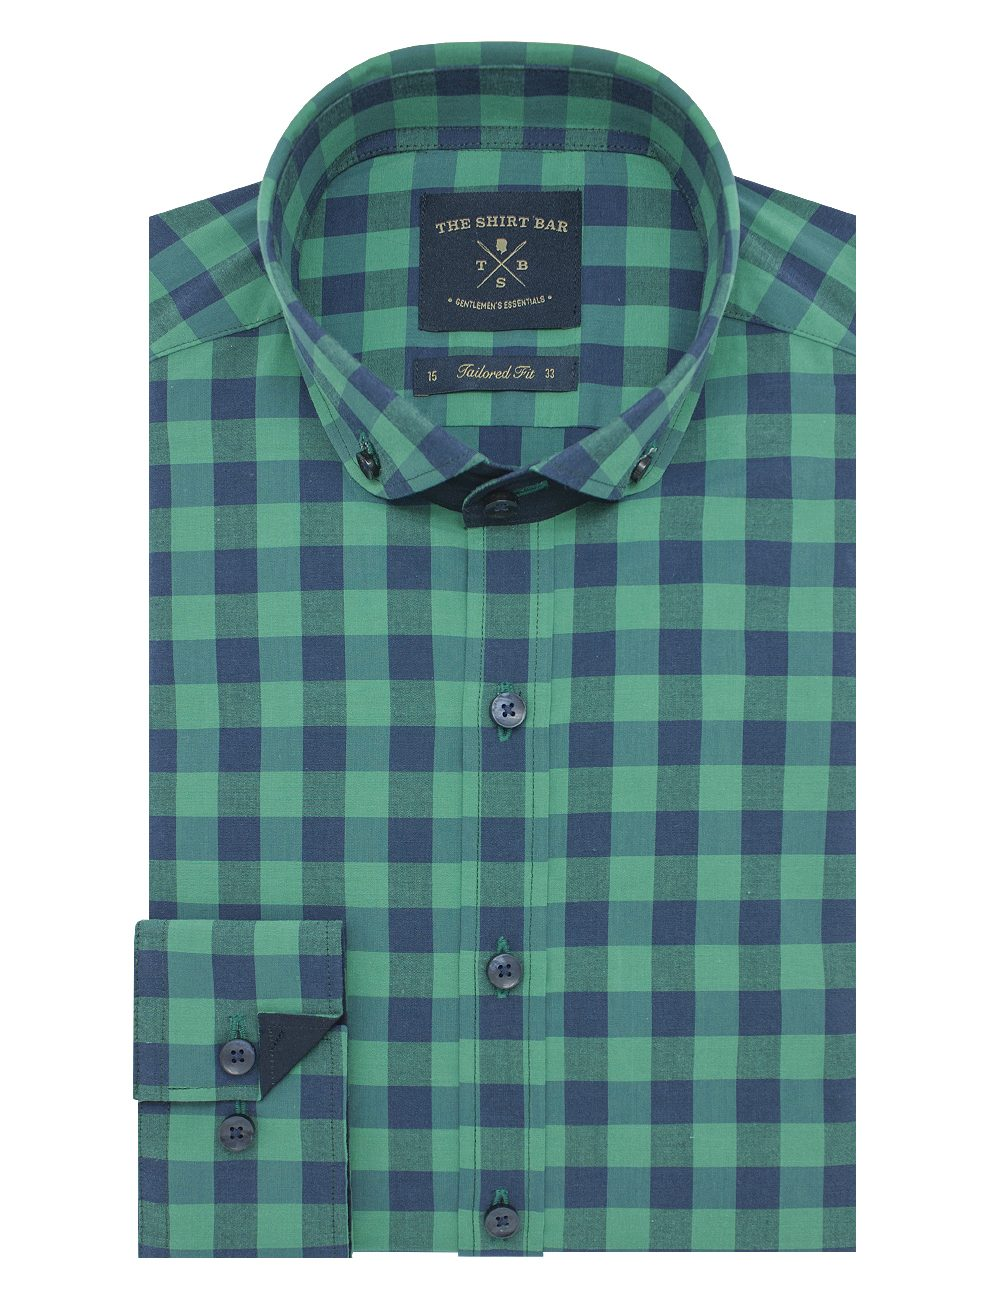 Green and Navy Checks Slim / Tailored Fit Button Down Long Sleeve Shirt - TF7E3.19